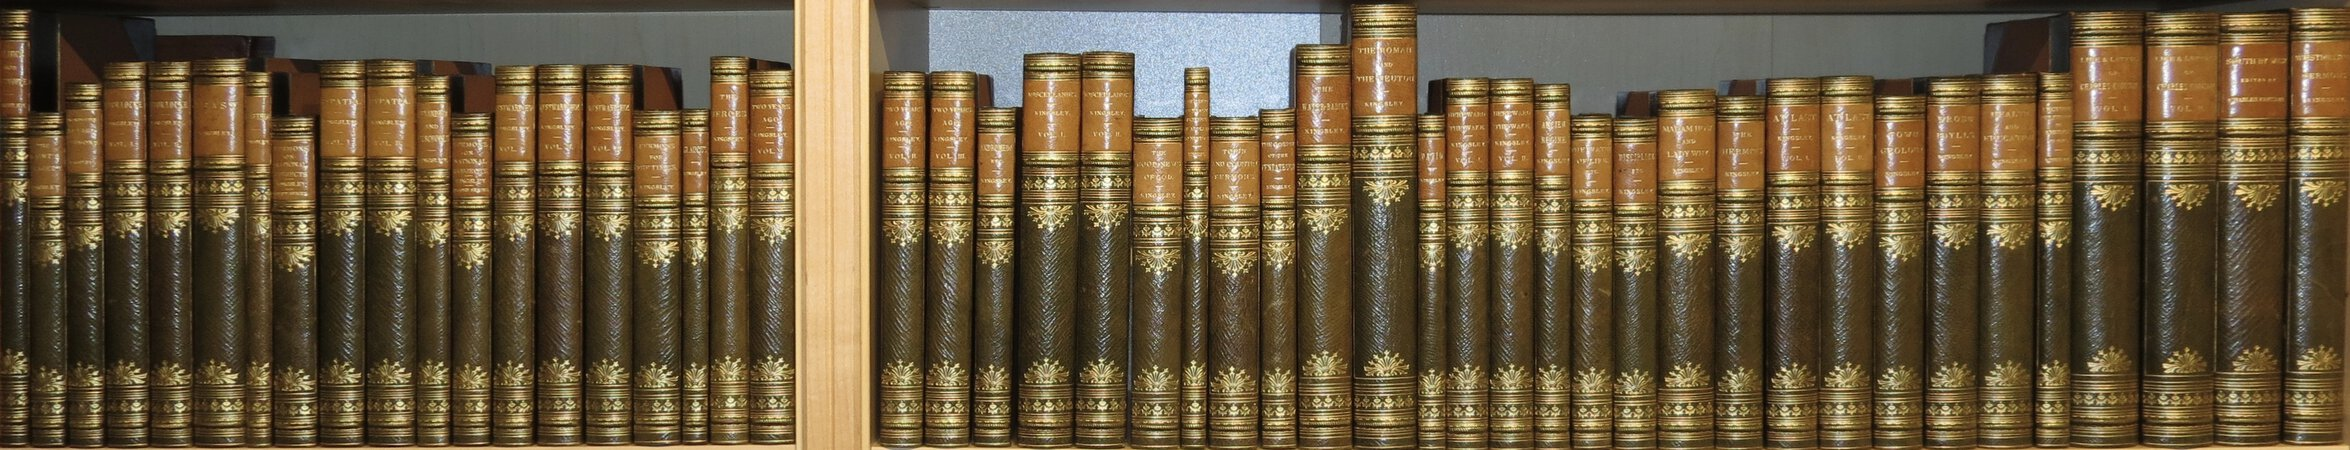 Politics for the People; Saint's Tragedy; Twenty-five Village Sermons; Alton Locke, Tailor and Poet, 2vols.; Yeast; Phaeton; Sermons on the National Subjects; Hypatia; Alexandria and her Schools; Sermons on National Subjects (2nd series); Westward Ho! 3 vols.; Sermons for the Times; Glaucus; Heroes, or Greek Fairy Tales; Two Years Ago, 3 vols.; Andromeda; Miscellanies, 2 vols.; Good News of God; Limits of Exact Science; Town and Country Sermons; Gospel of the Pentateuch; Water Babies; Roman and the Teuton; David, Four Sermons; Hereward the Wake, 2 vols.; Ancient Regime; Water of Life; Discipline; Madame How and Why; The Hermits; At Last, 2 vols.; Town Geology; Prose Idylls; Health and Education; Lectures delivered in America in 1874-1875; Charles Kingsley, his Letters, and Memoirs of his Life, 2vols.; South by West or Winter in the Rocky Mountains and Spring in Mexico; Westminster Sermons. by KINGSLEY, Charles